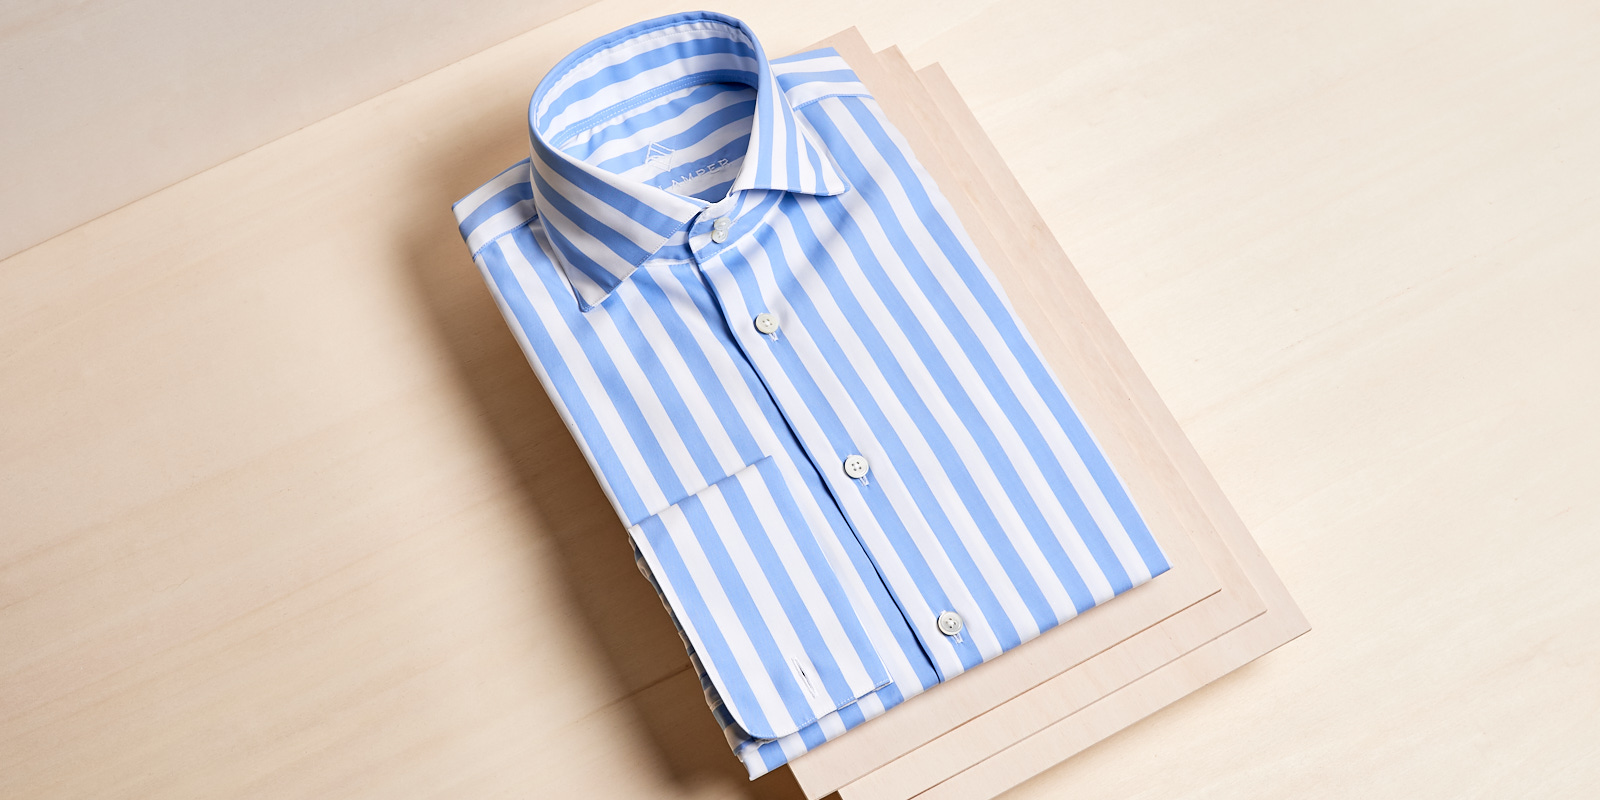 We manufacture your dress shirt